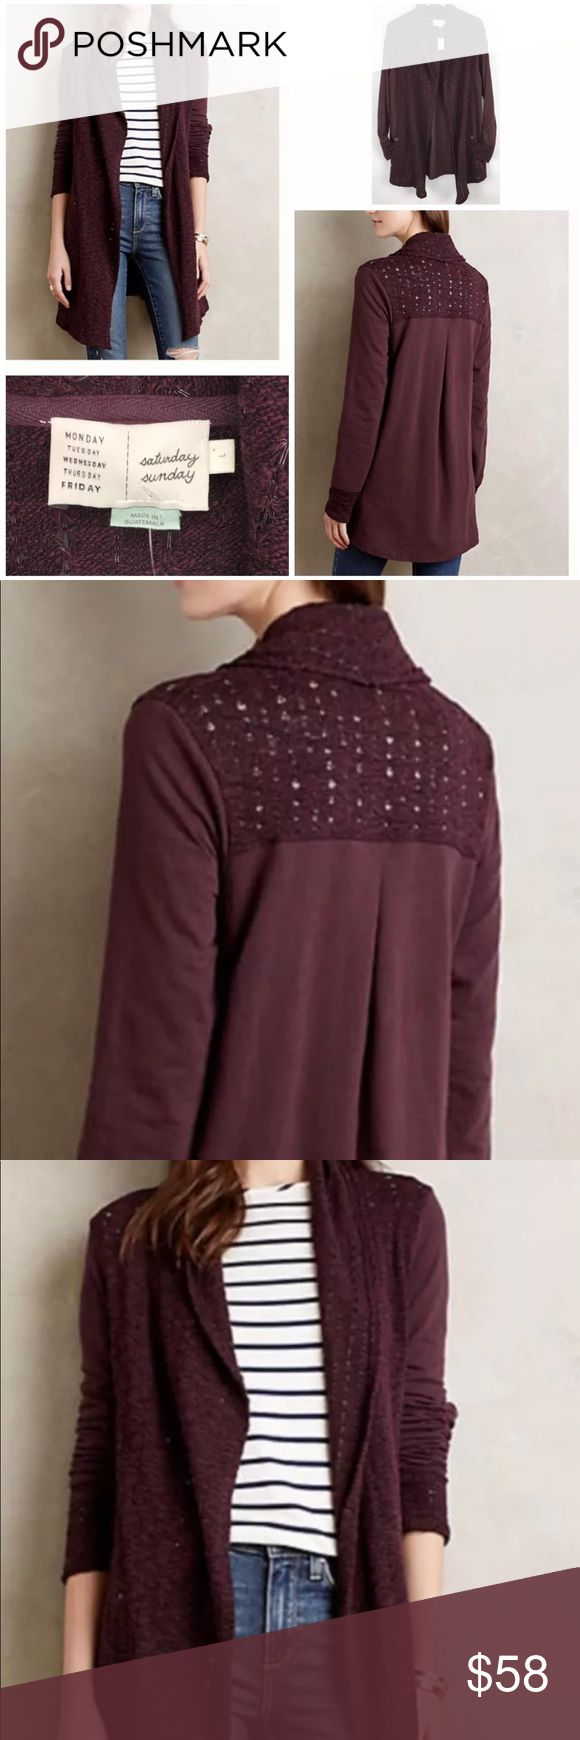 Saturday Sunday Anthropologie open cardigan Plum Saturday Sunday by Anthropologie. Open cardigan in Athens plum color. In excellent pre-owned condition (no stains, no rips or tears, no pilling). Perfect for the fall weather with a simple tee, jeans and boots. Anthropologie Sweaters Cardigans